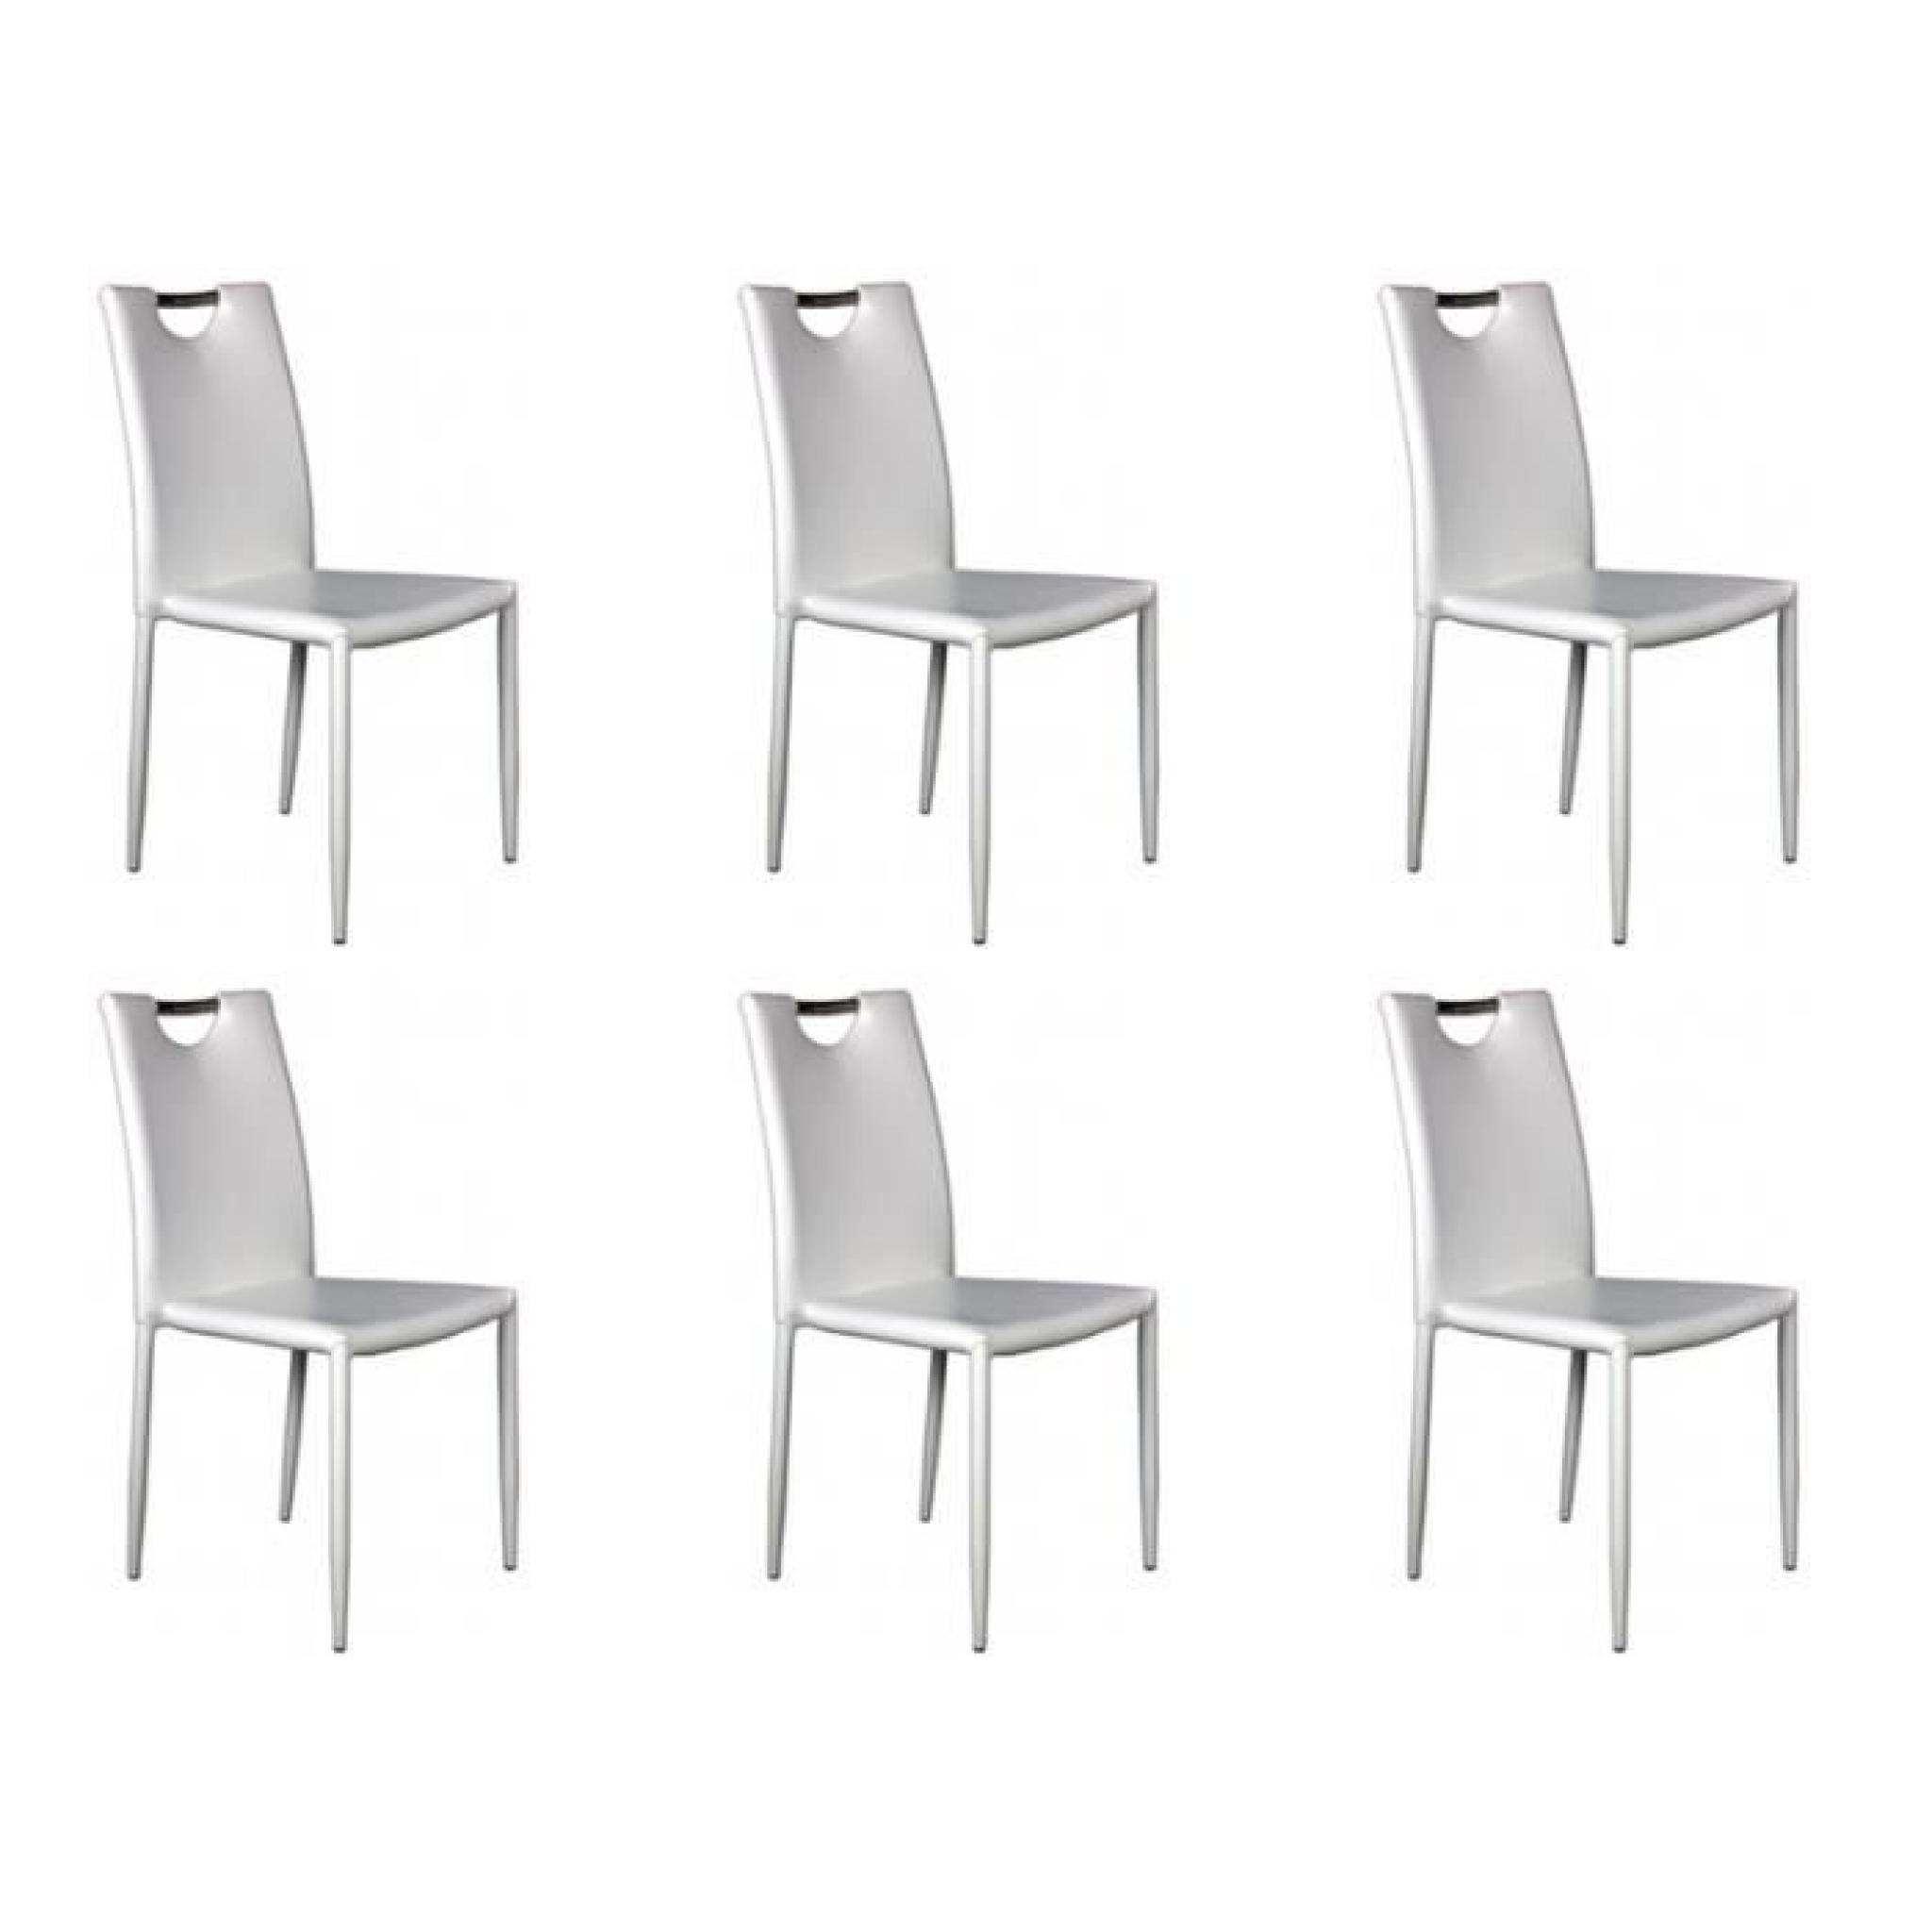 kira lot 6 chaises blanches achat vente chaise salle a. Black Bedroom Furniture Sets. Home Design Ideas